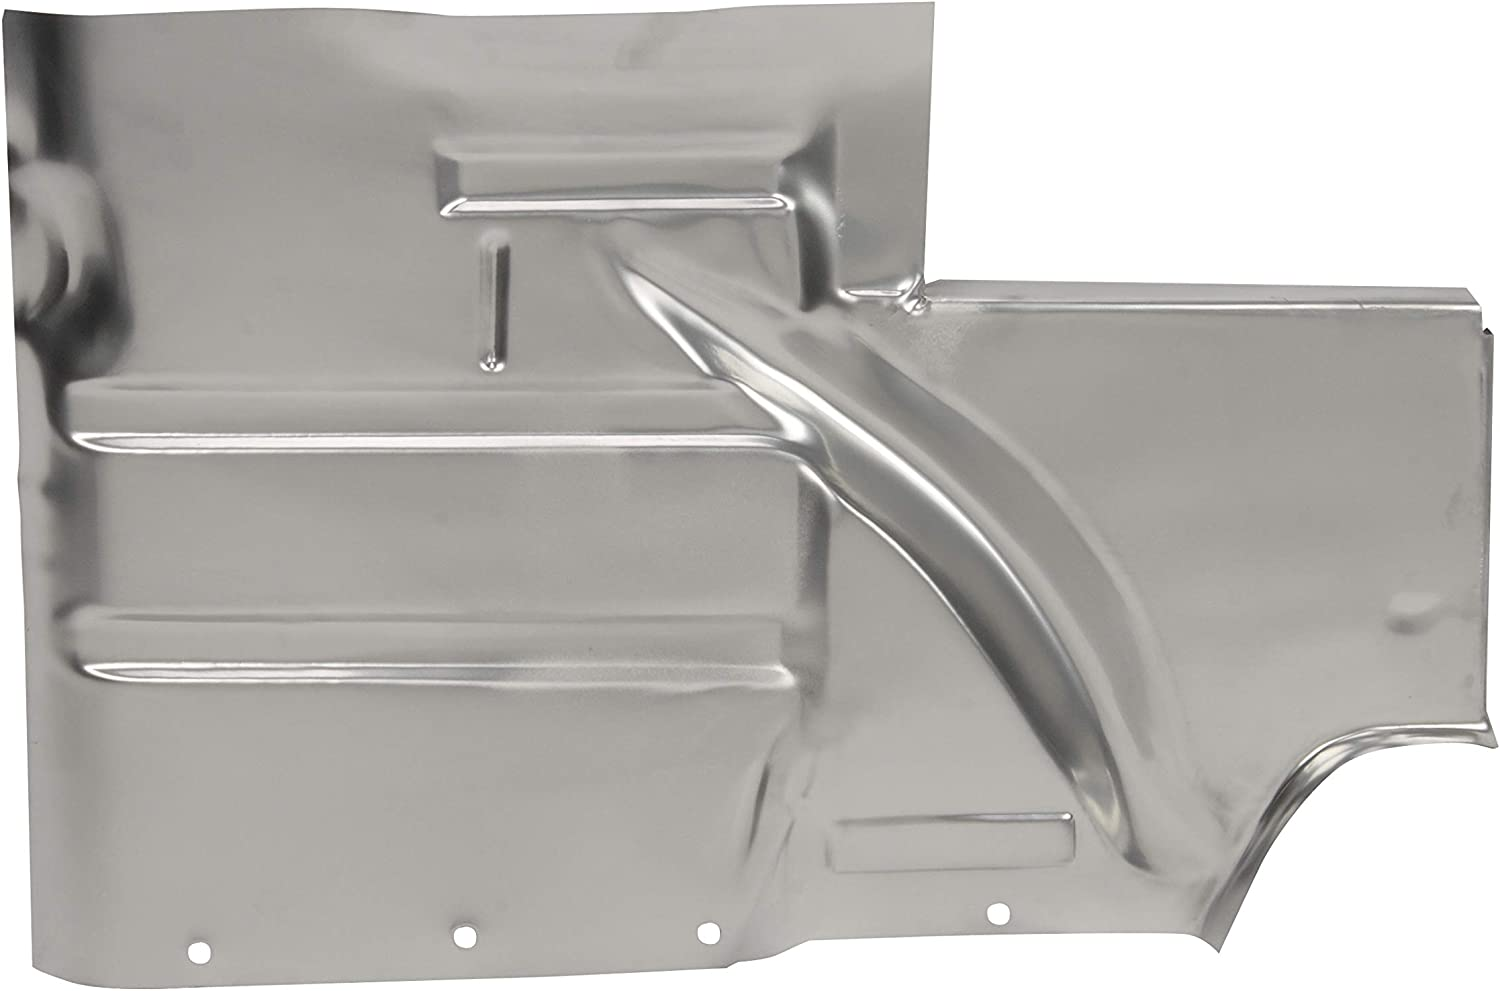 Spectra Premium M131L Ford Mustang Rear Driver Side Floor Extension